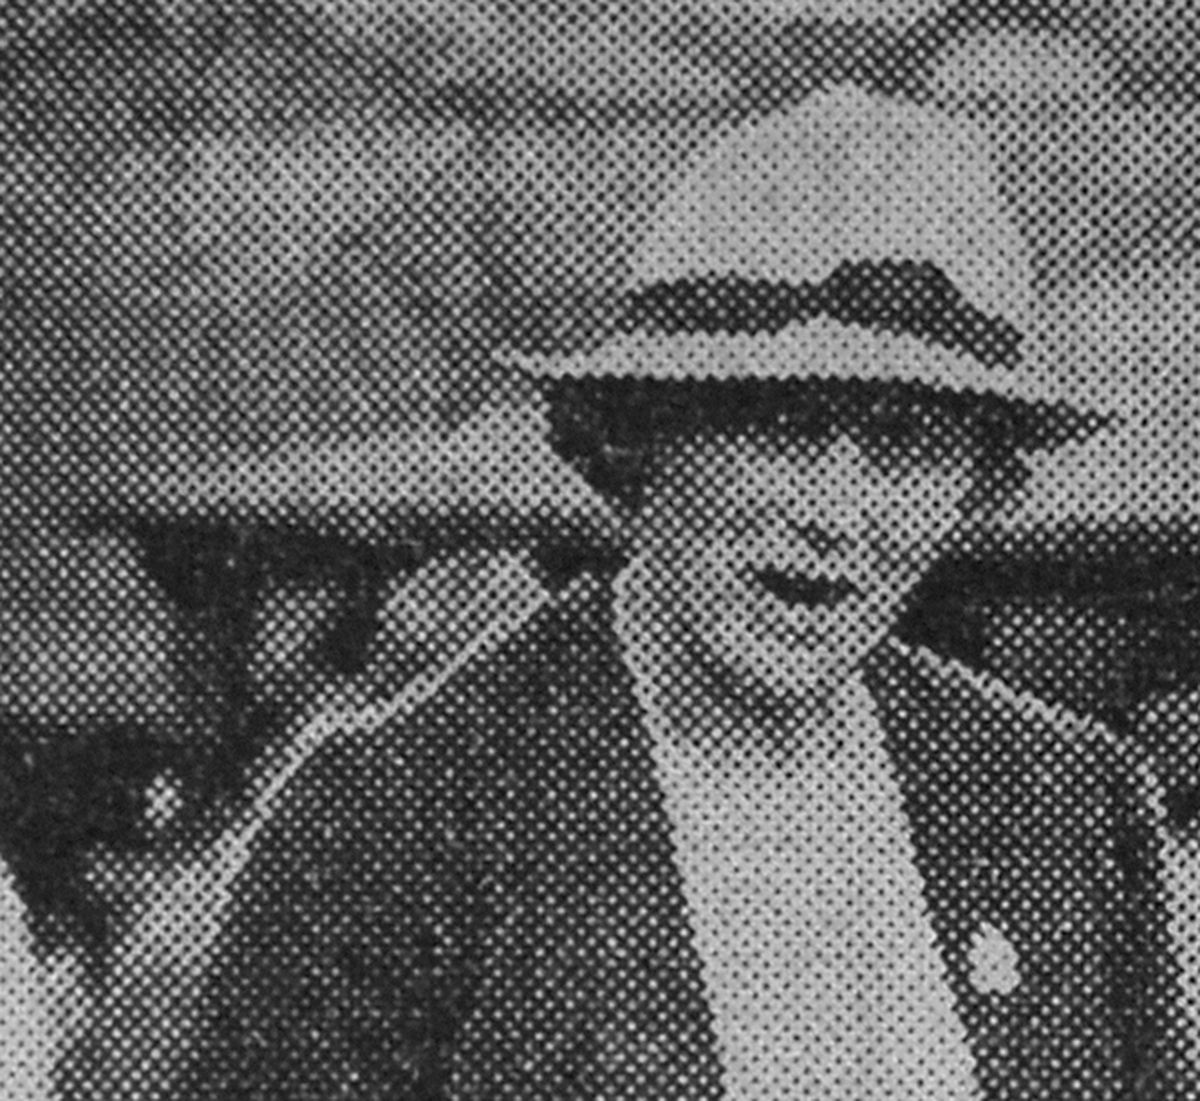 Viscountess Boyne was the first chairman of Shropshire Old People's Welfare Council